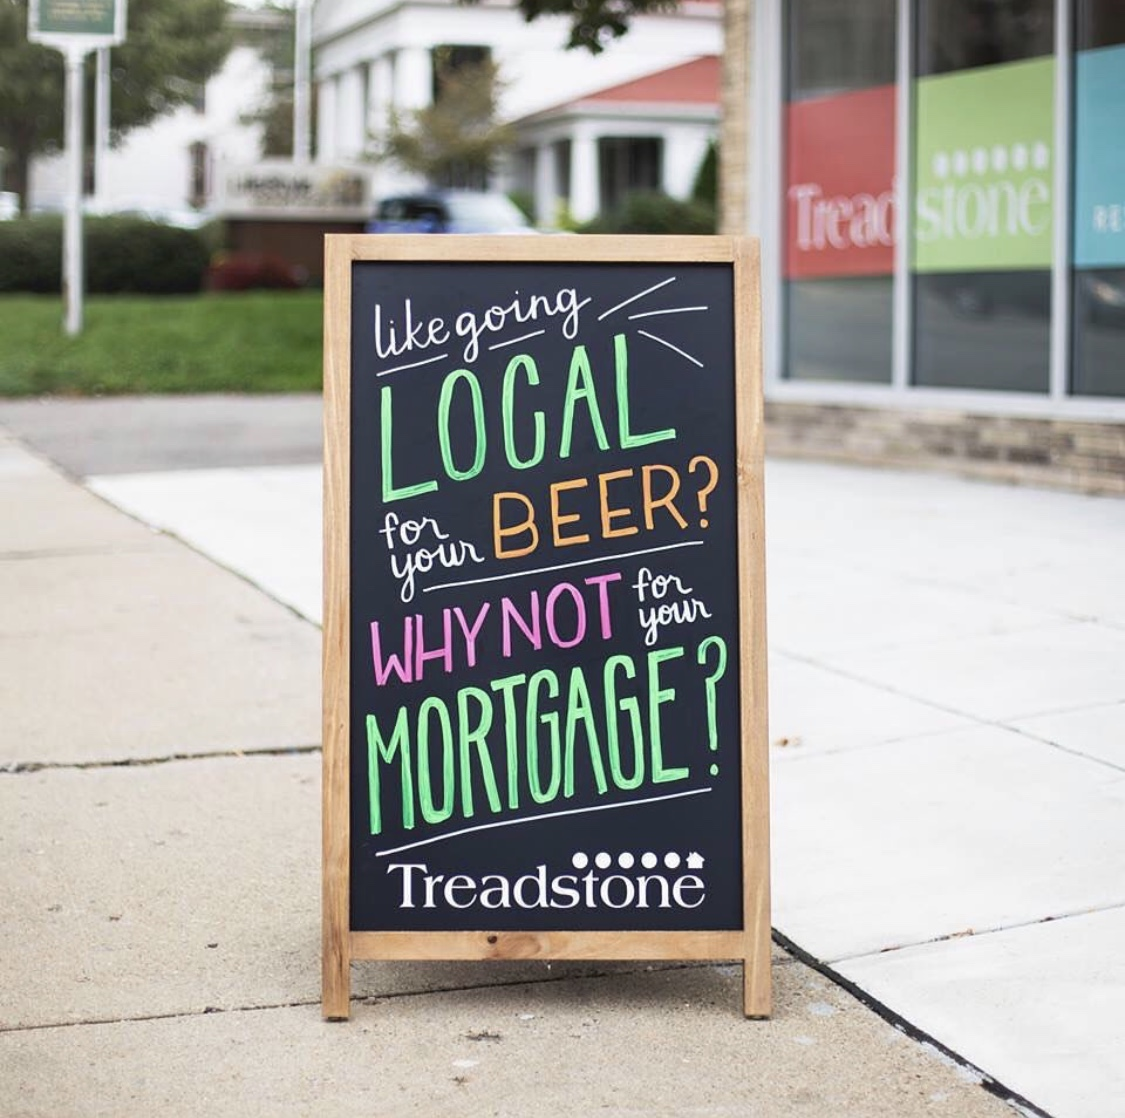 treadstone heartside grand rapids michigan mortgage